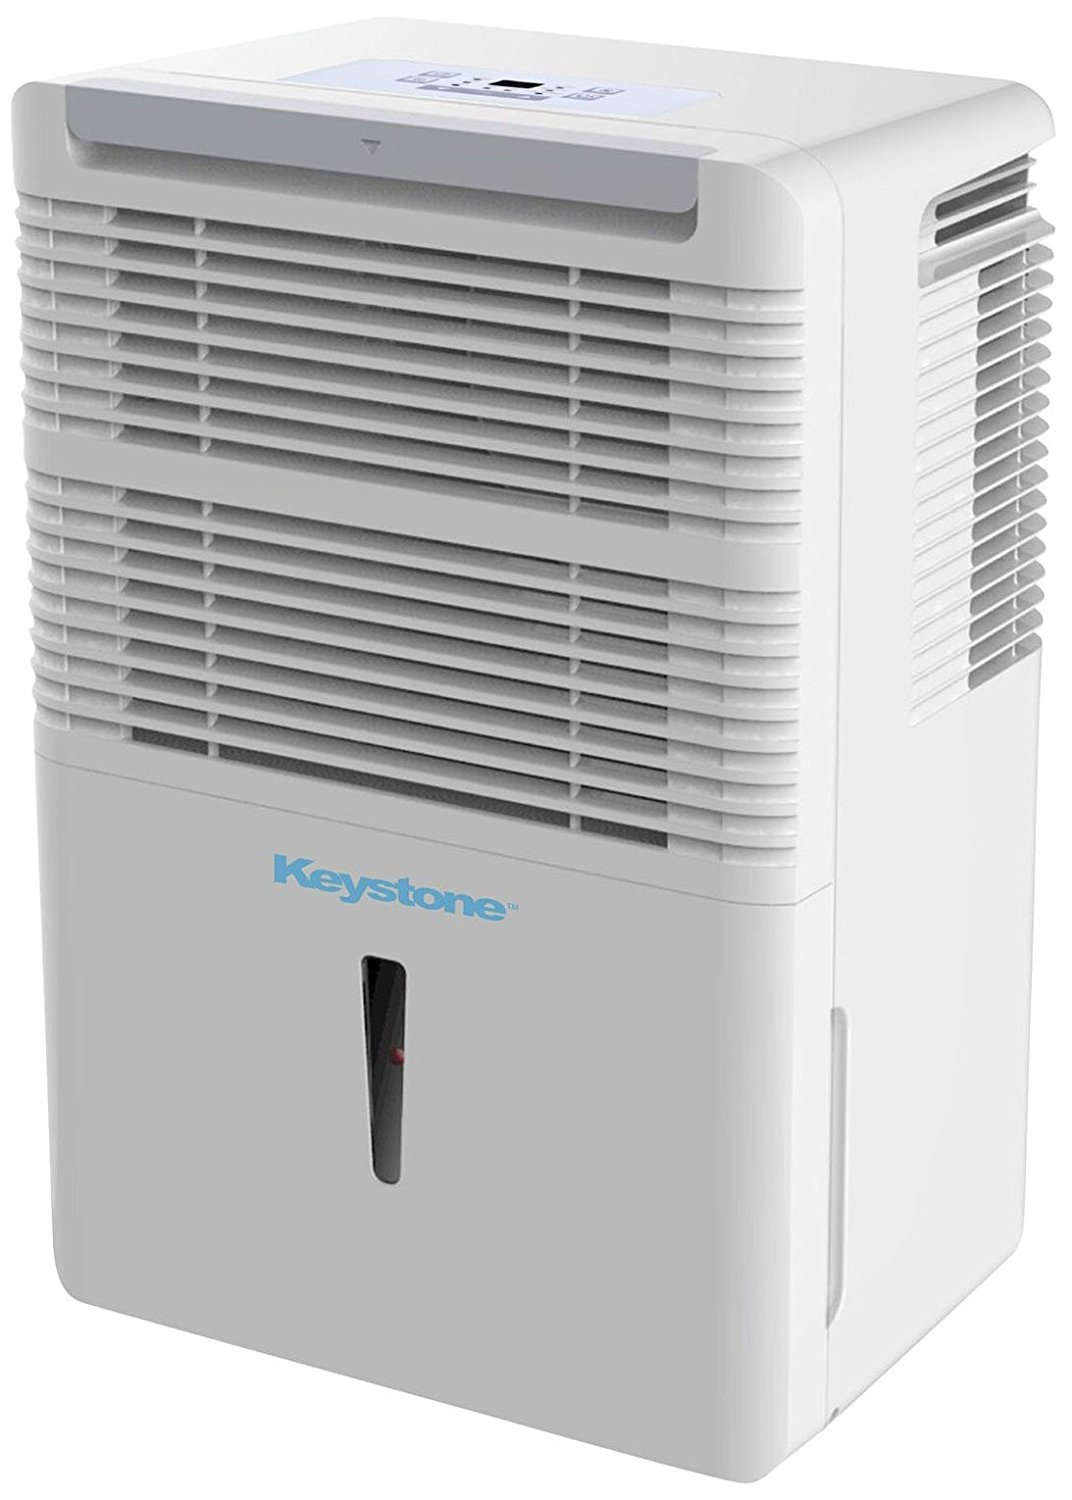 Keystone Energy Star 50-Pint Portable Dehumidifier for 3000 Sq. Ft. with 6.4-Pint Bucket Capacity and Full Bucket Alert, White (Pack of 3)